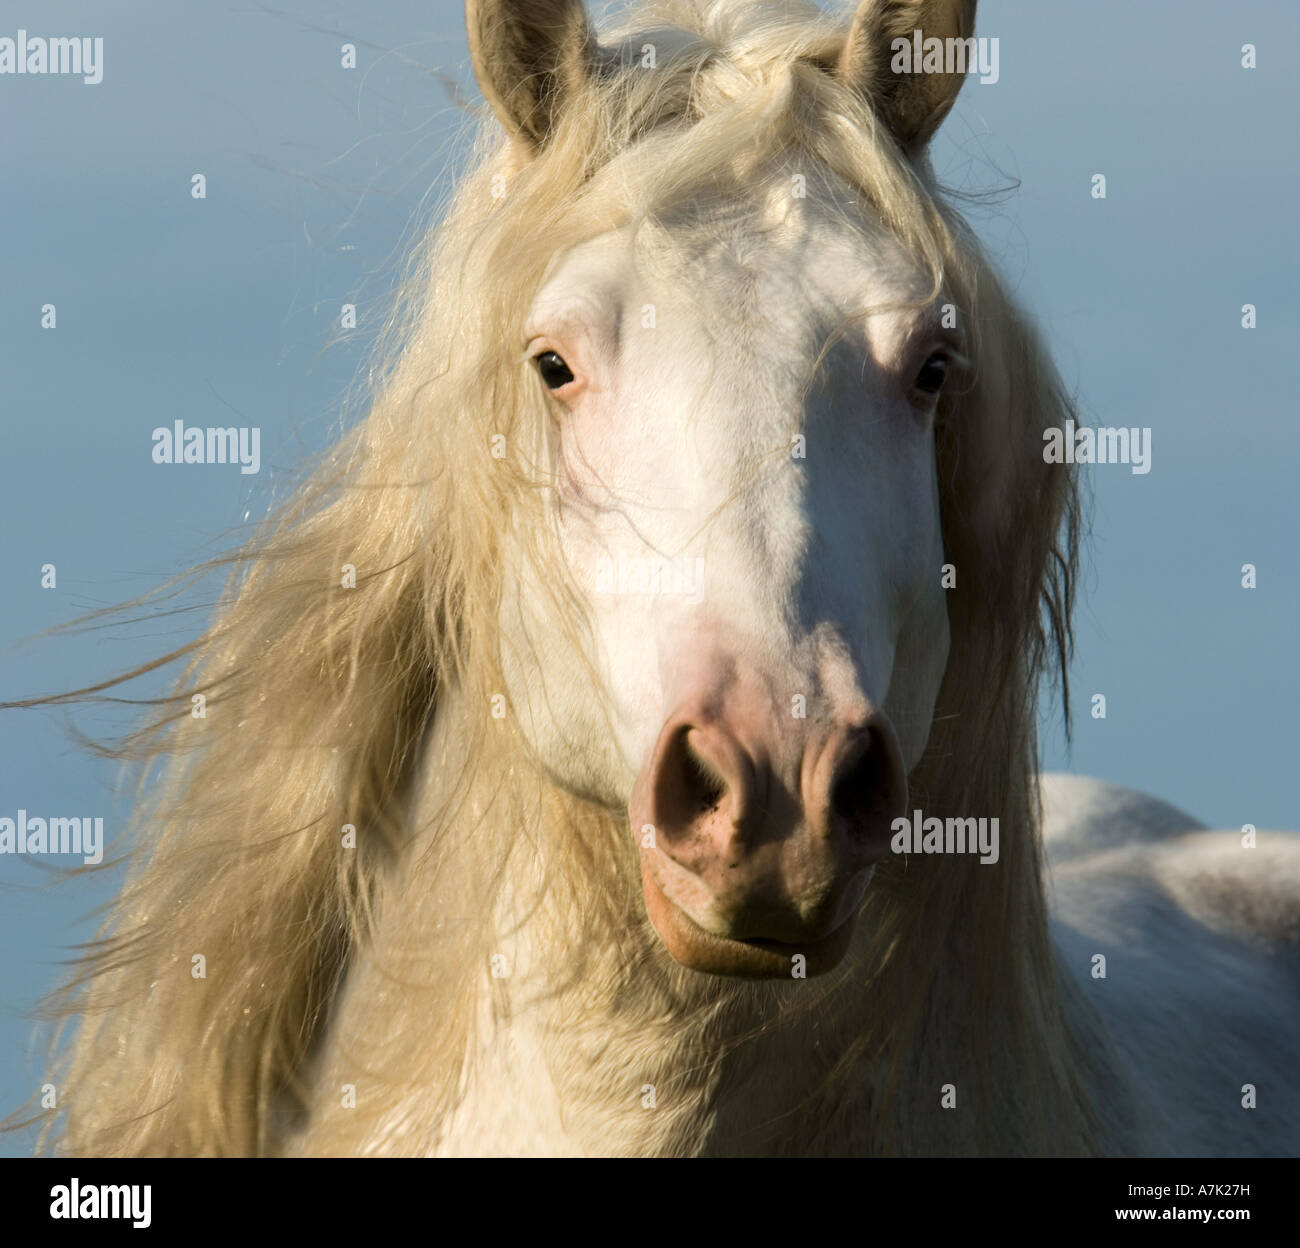 Head Of American White Draft Horse Stallion Running From Side Stock Photo Alamy